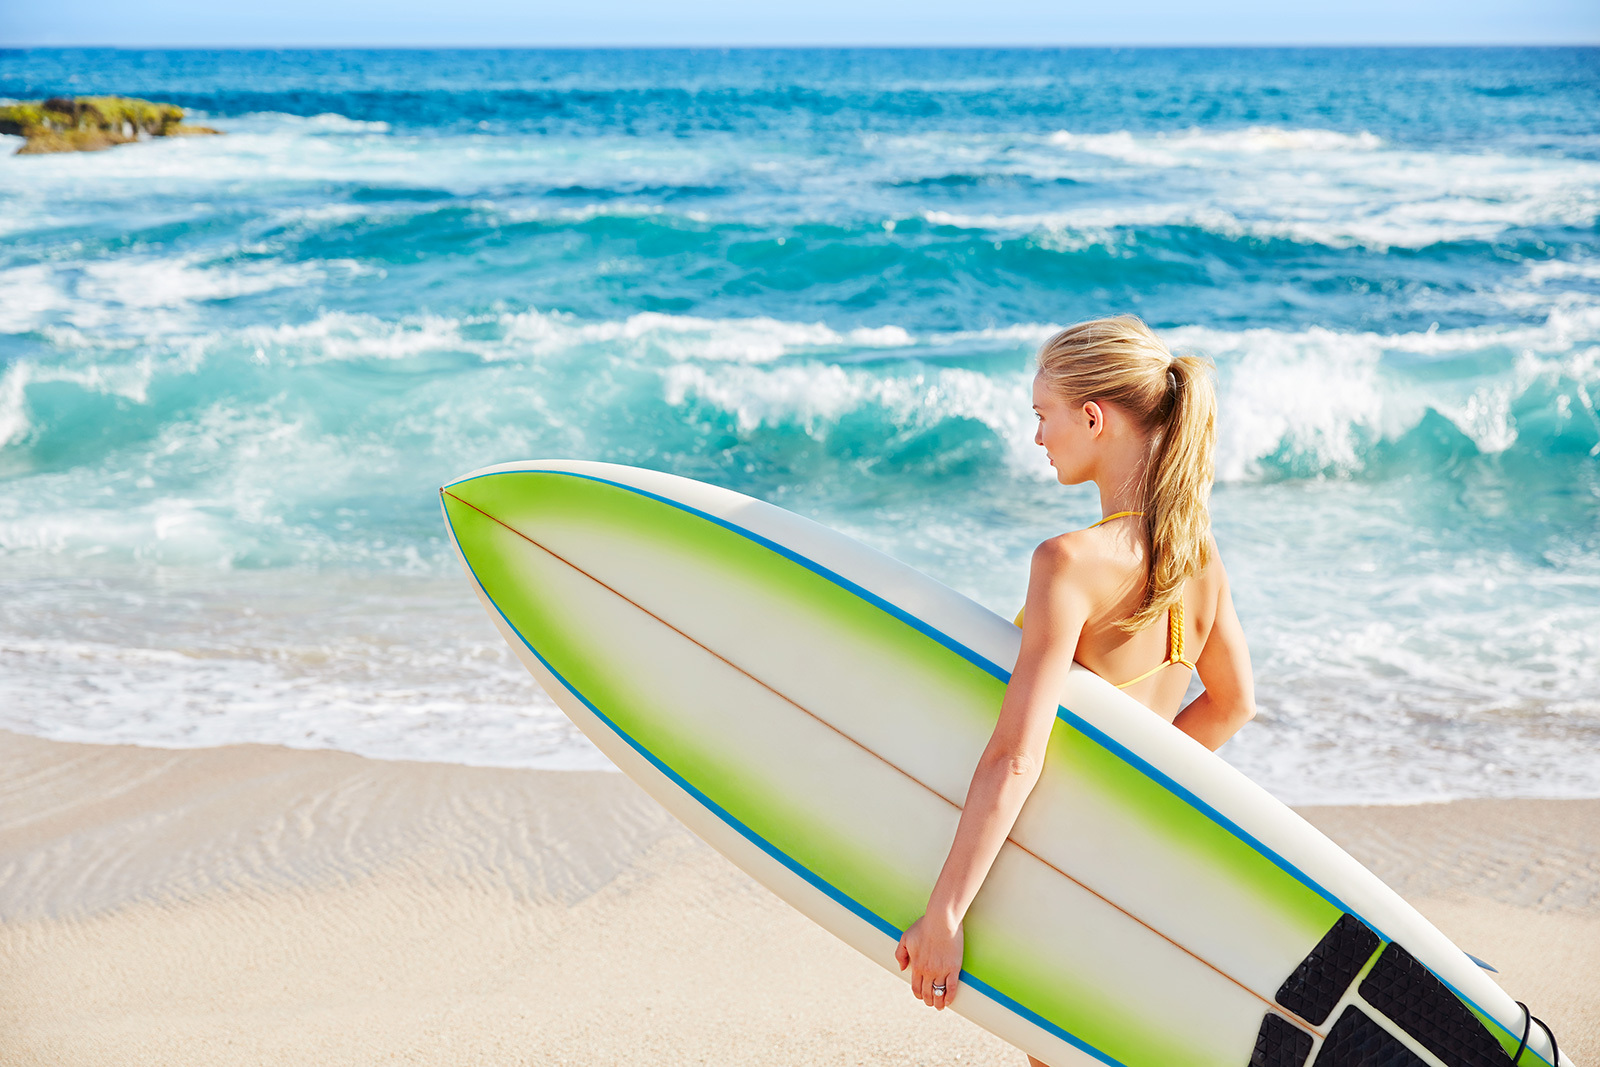 Blond girl with surfboard  | Dovis Bird Agency Photography